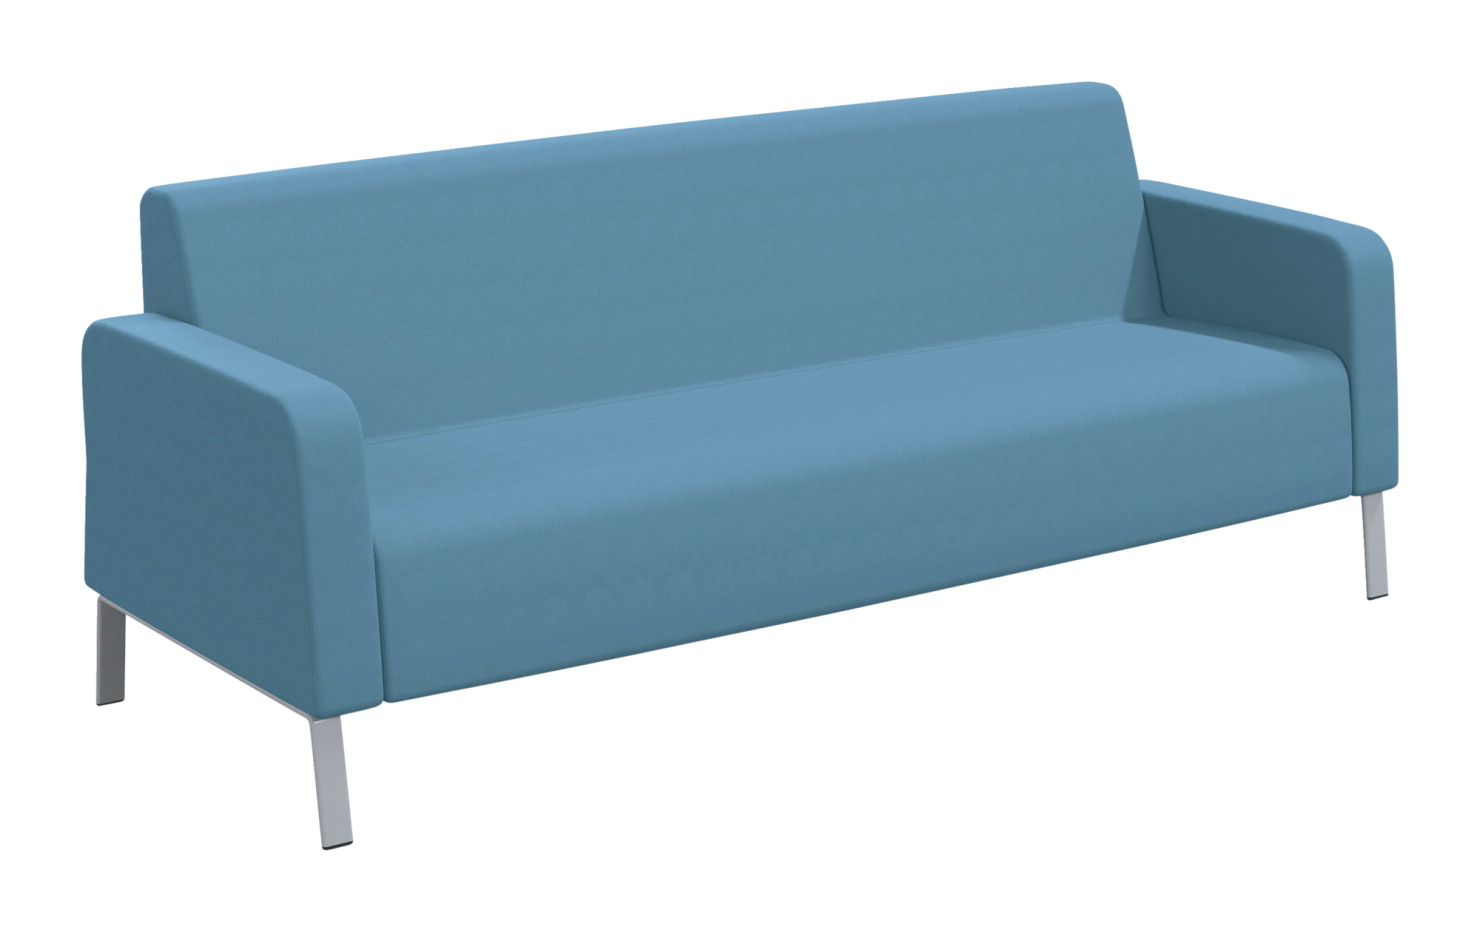 Classroom Select Soft Seating Armed Sofa, 86 x 32 x 34 Inches, Various Options